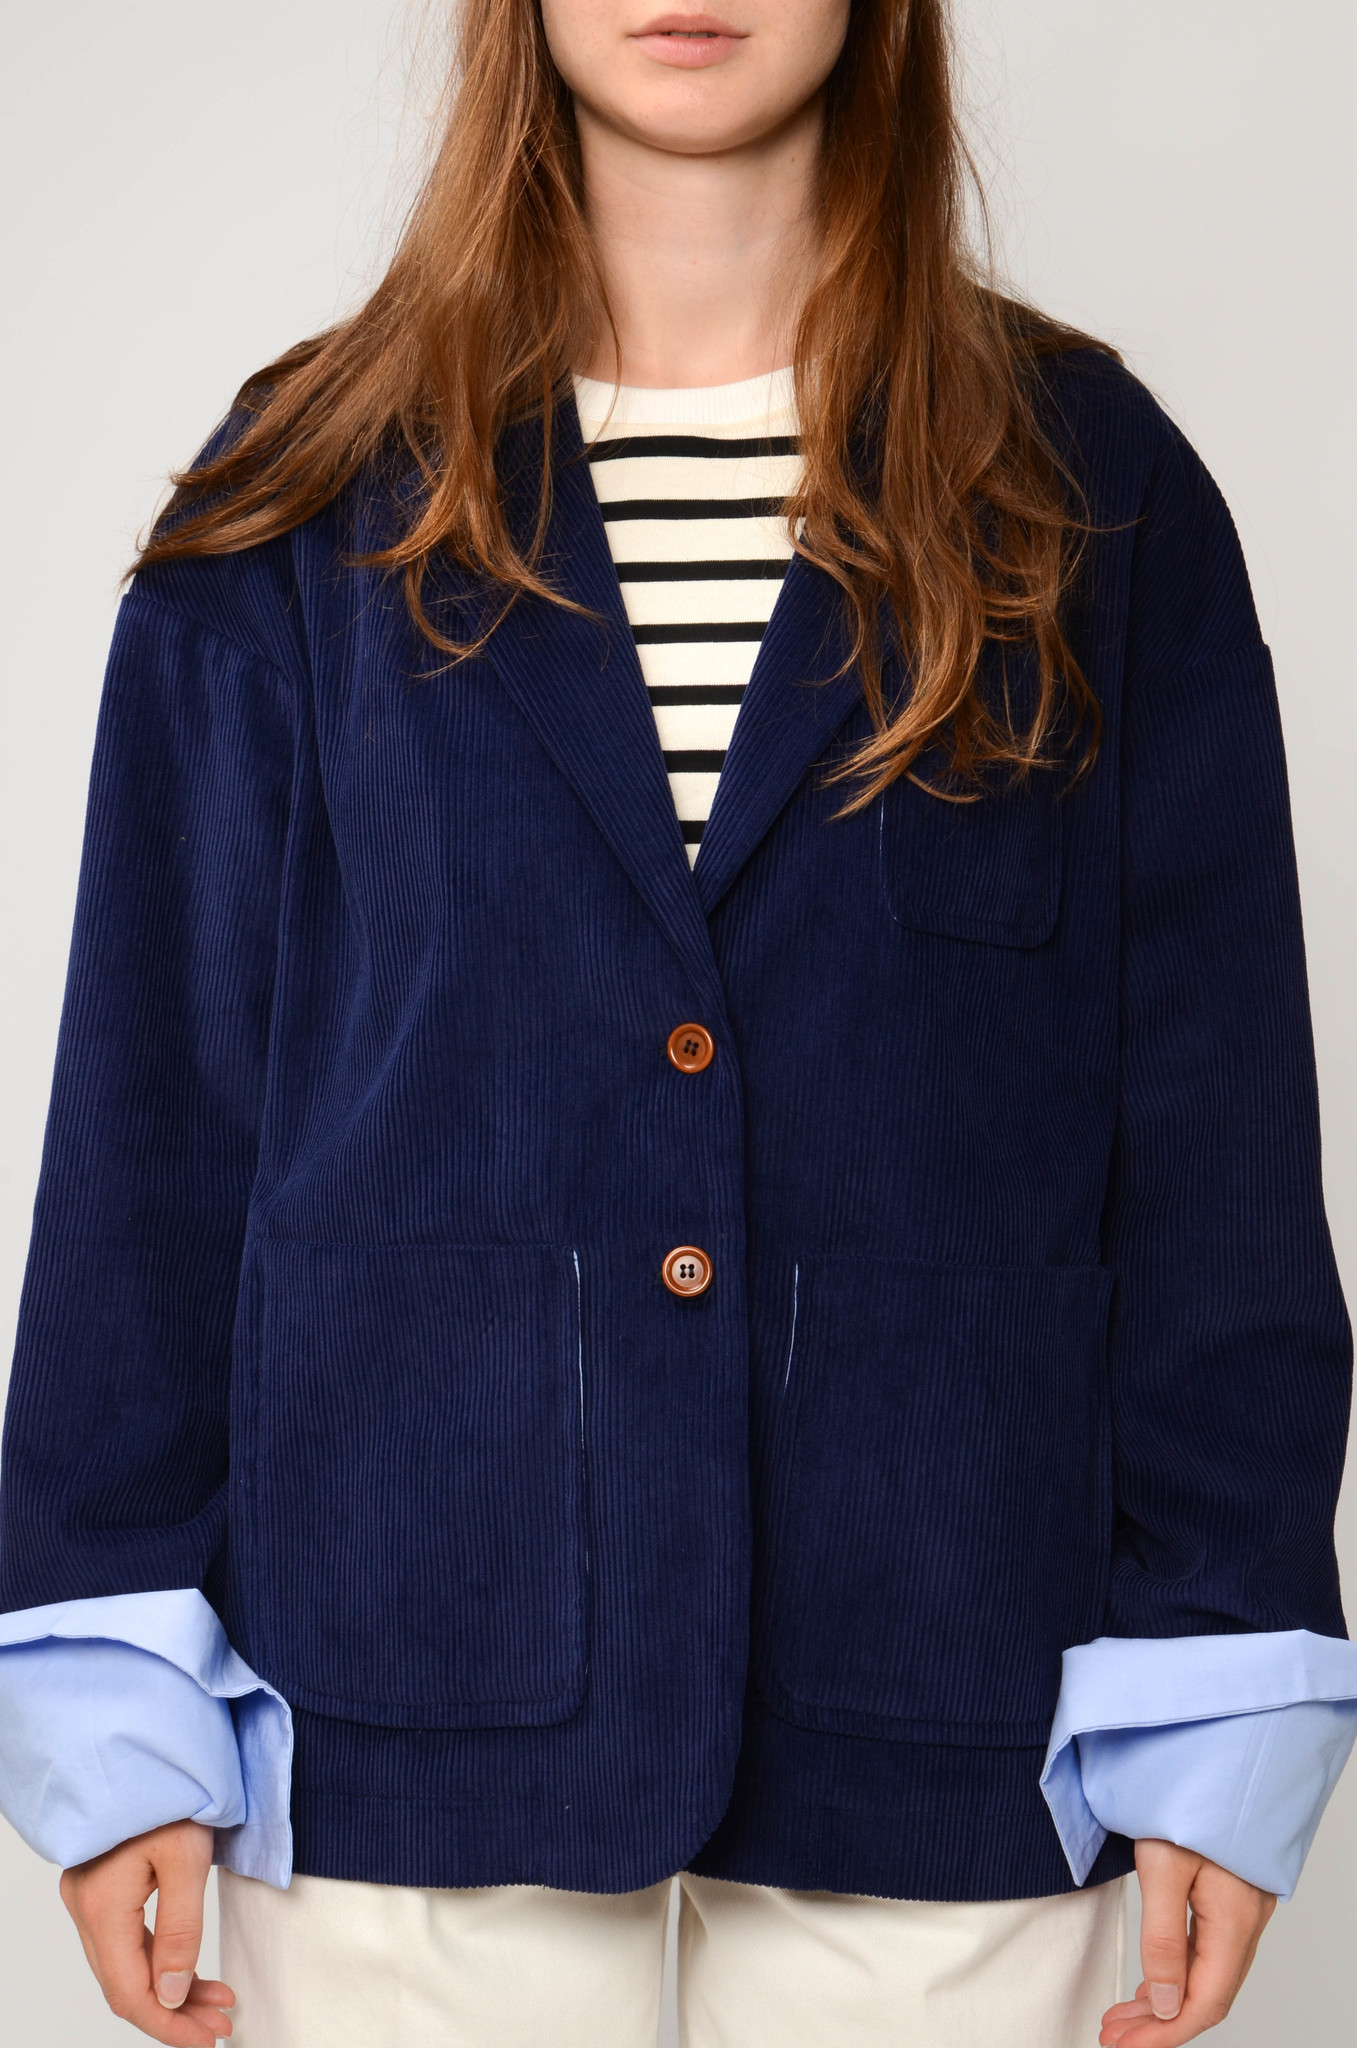 CAMILLE JACKET IN ROYAL BLUE-1